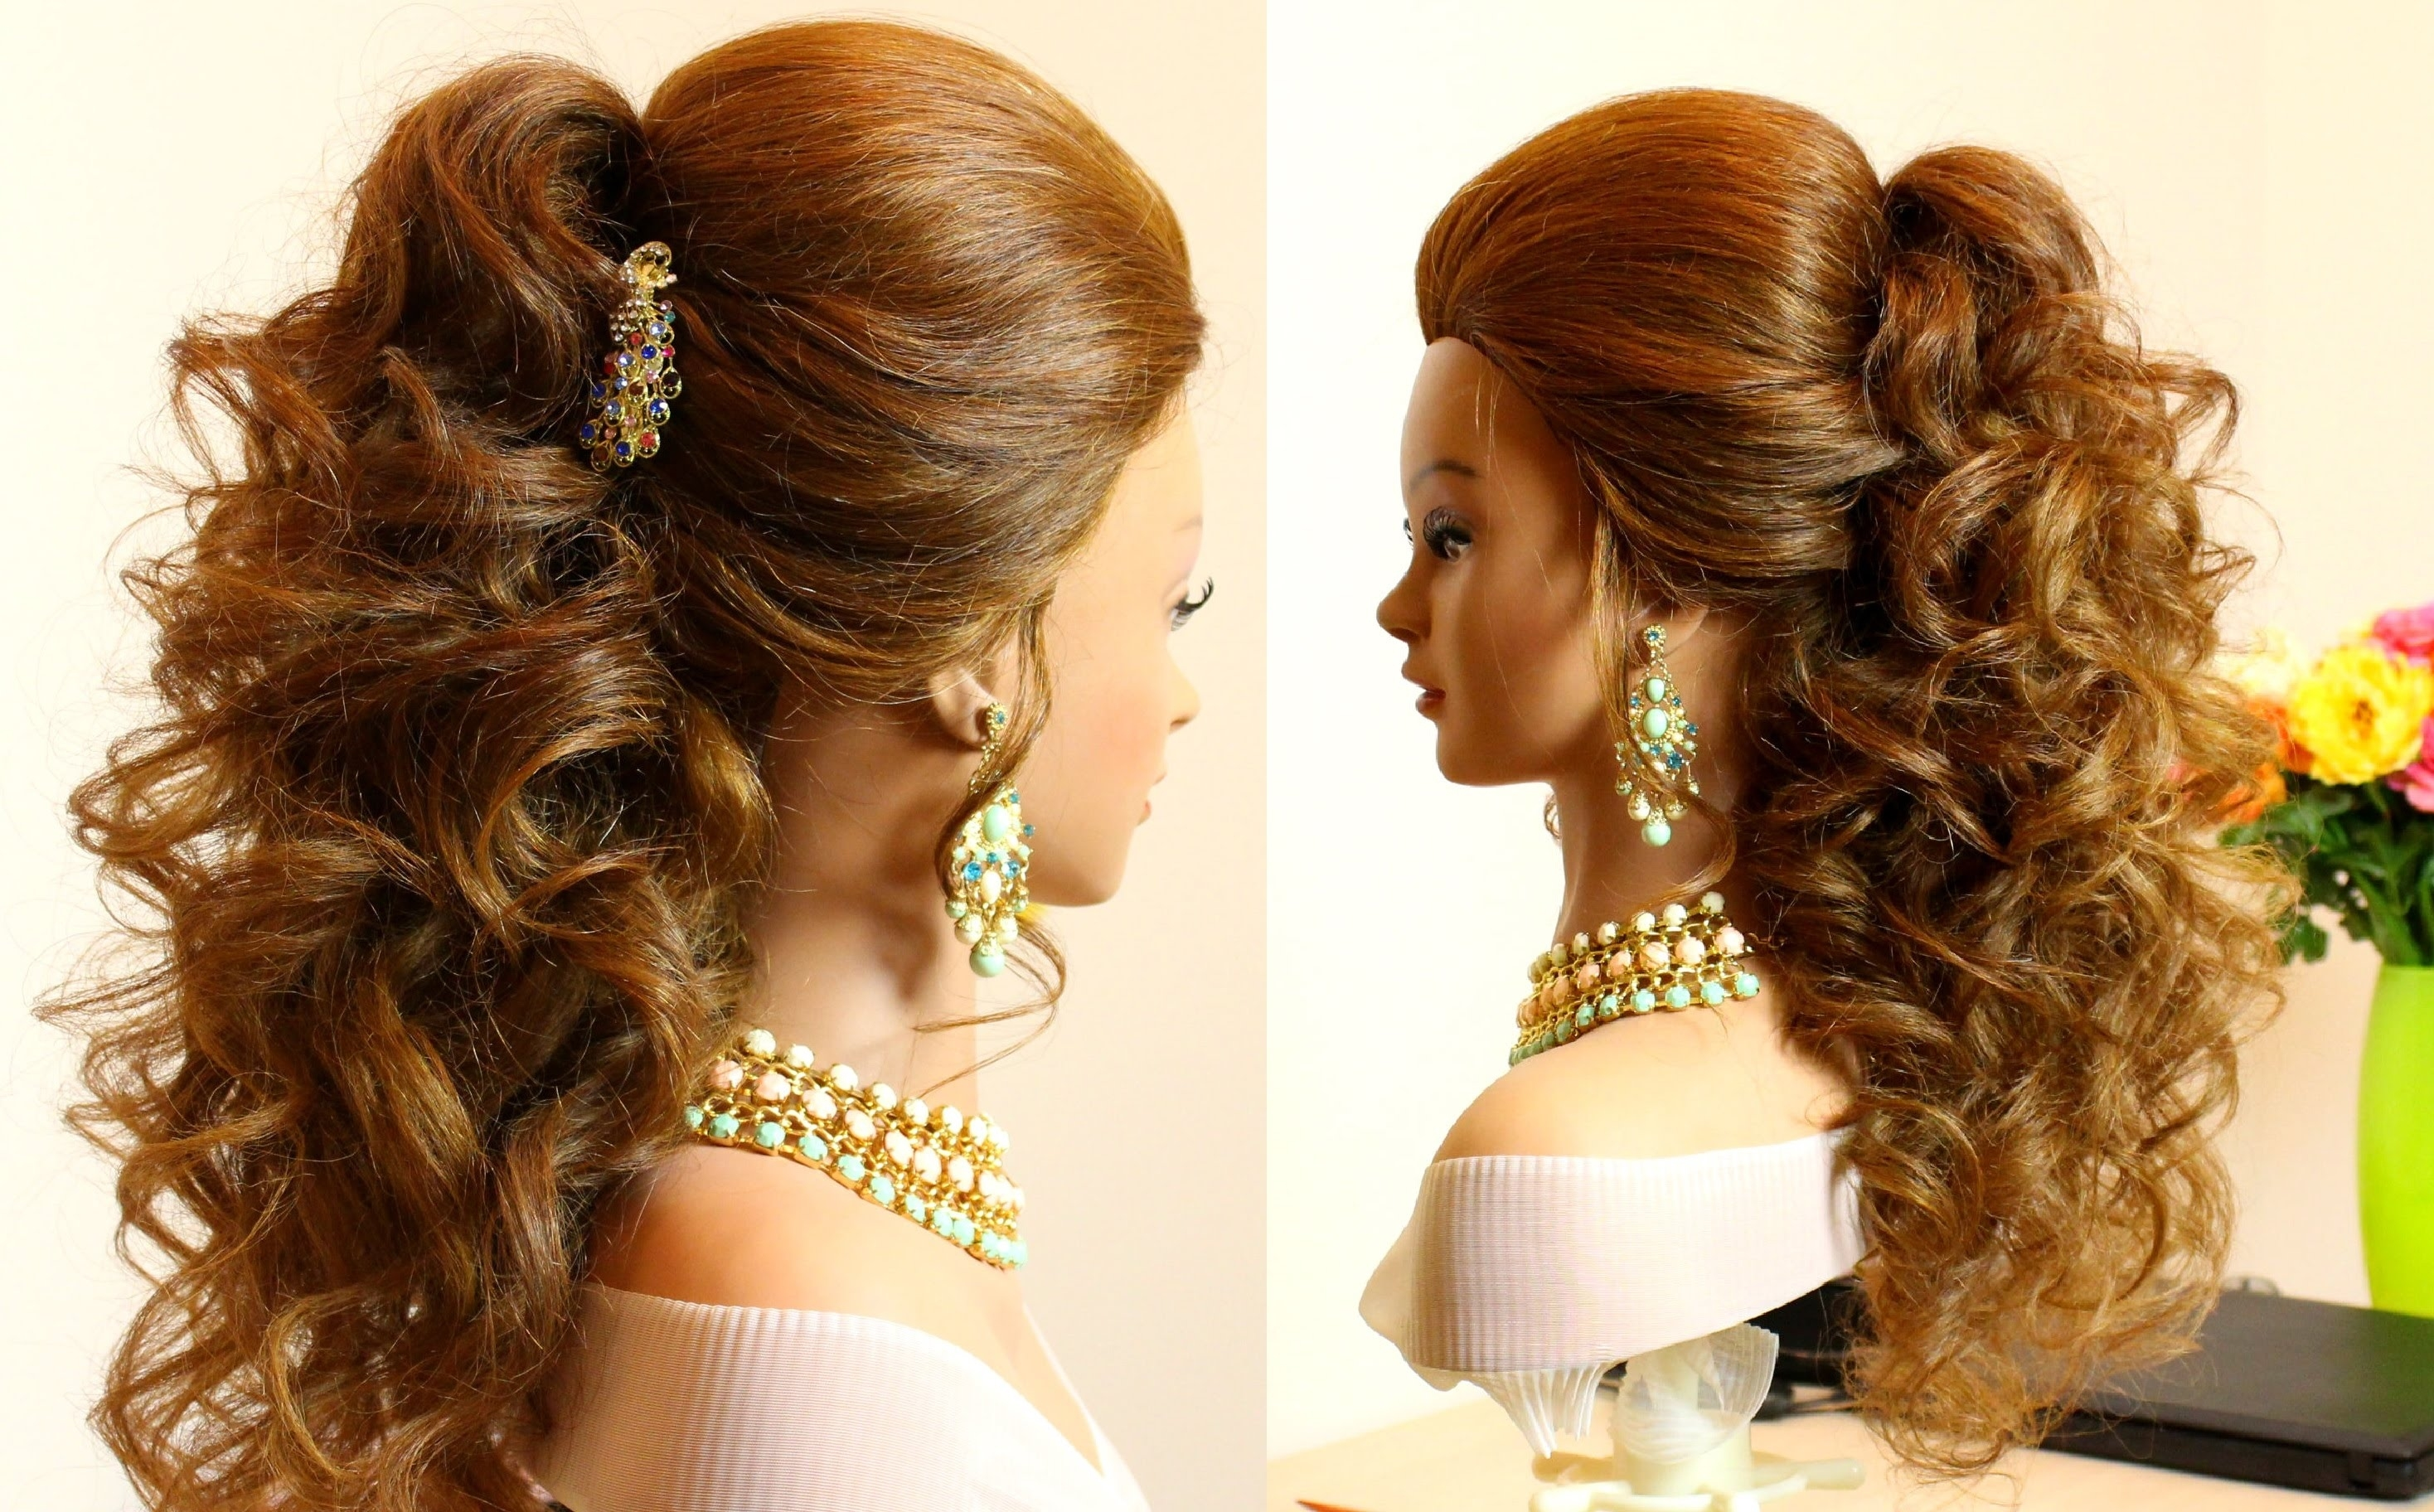 Curly Bridal Hairstyle For Long Hair Tutorial - Youtube with Hairstyle For Wavy Hair Wedding